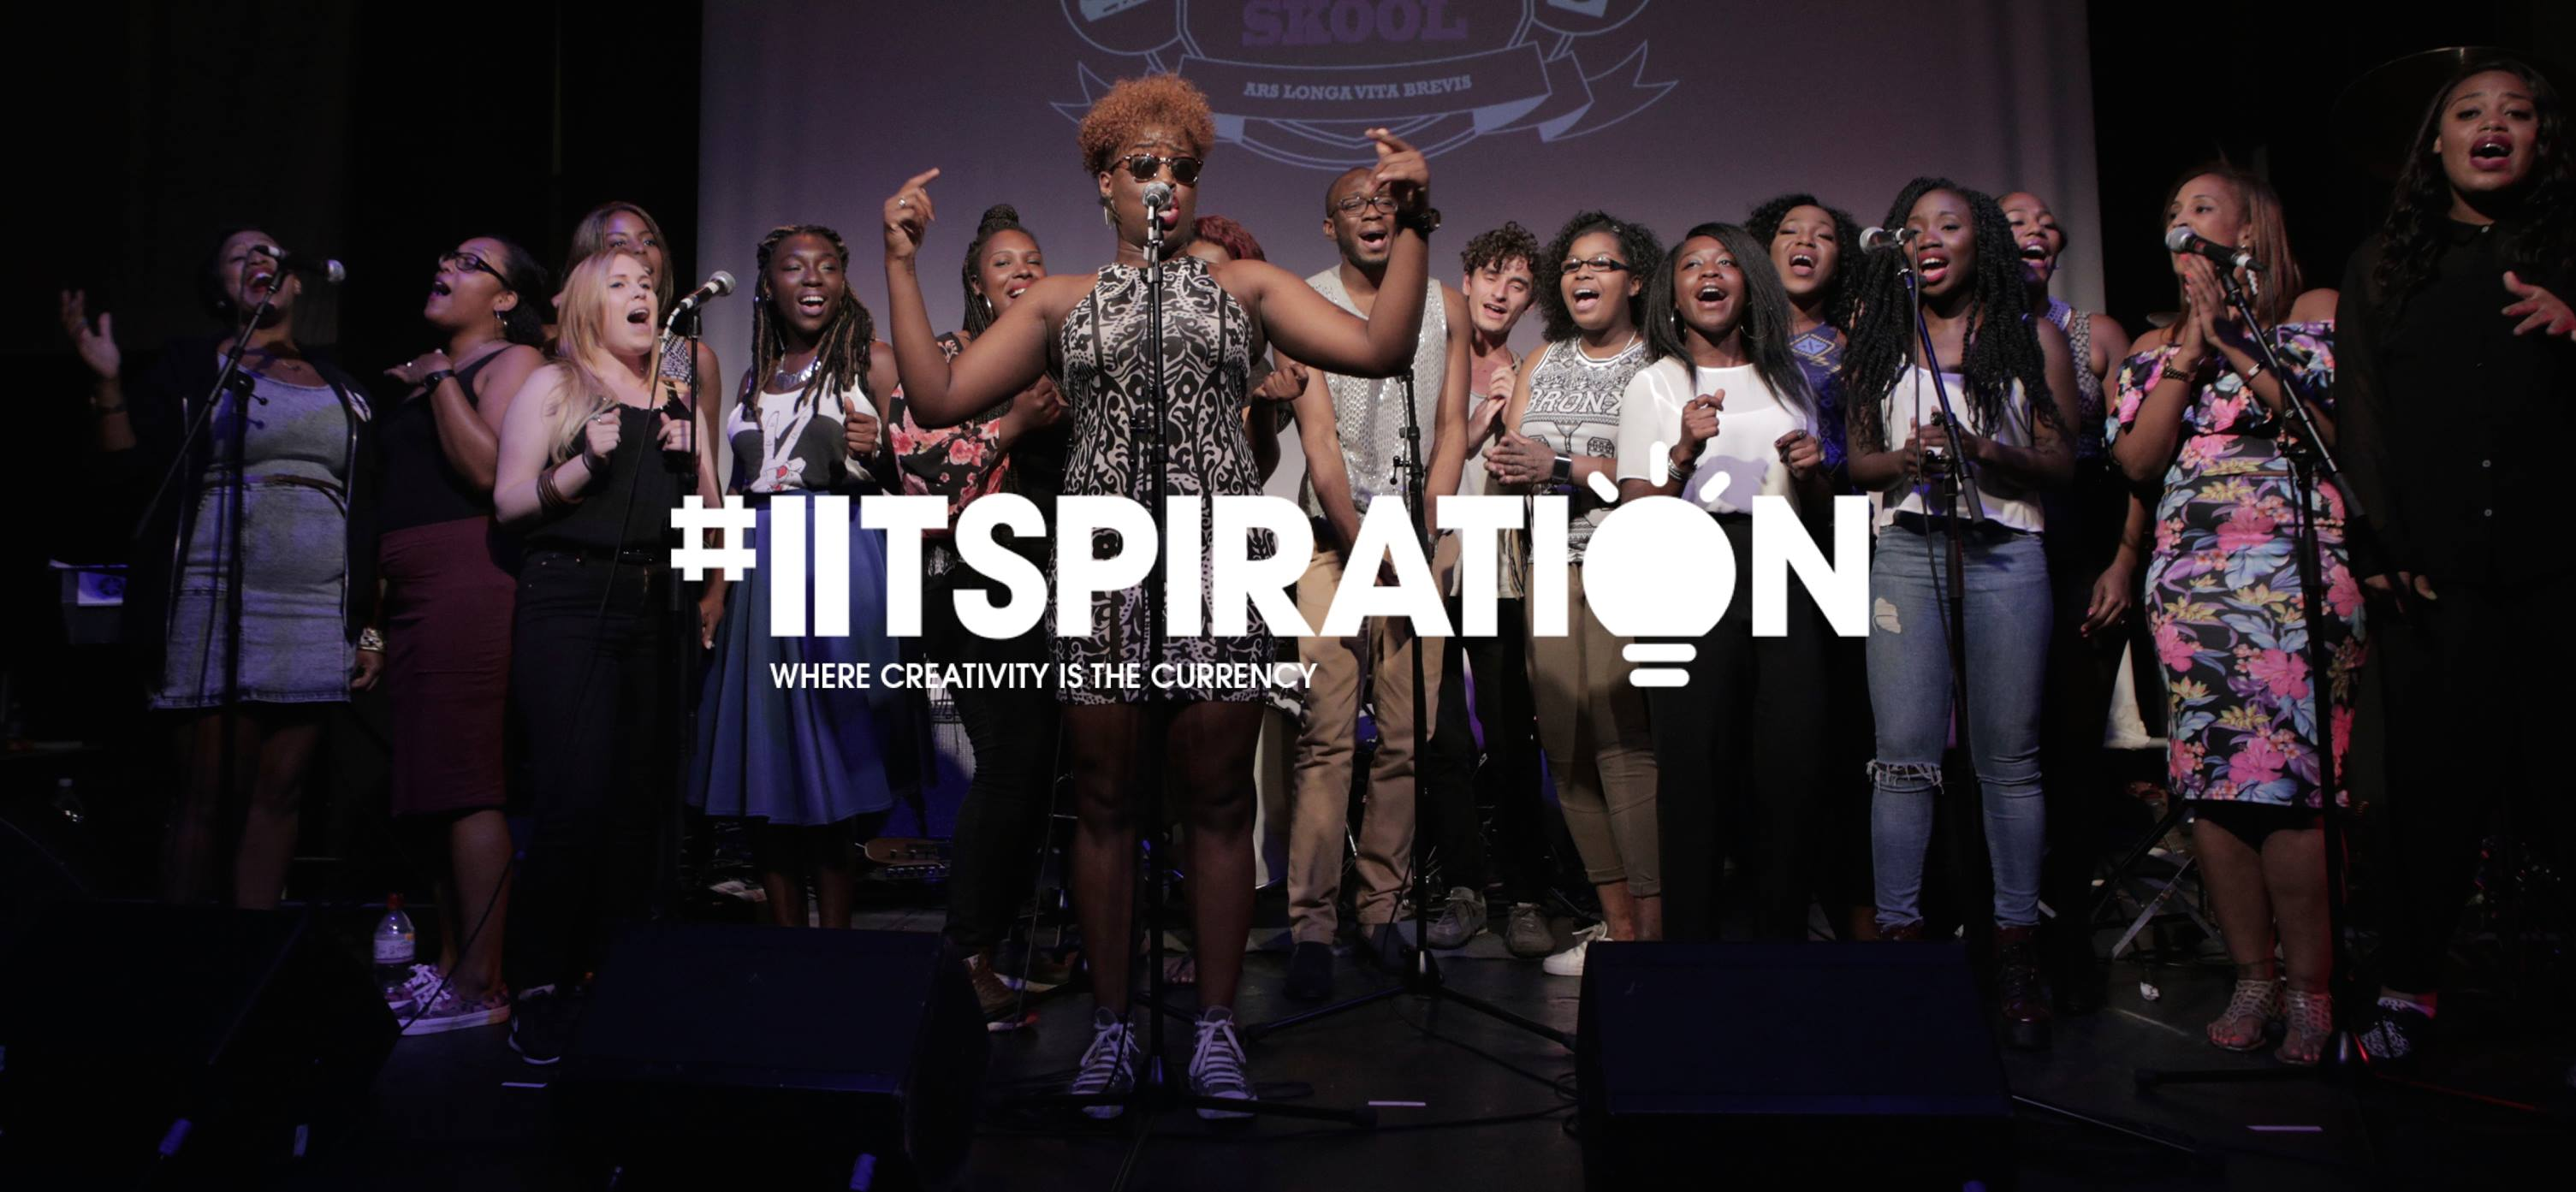 THURS 5TH & SAT. 8TH NOV. – COME ALONG & SING WITH HGC @ #IITSPIRATION – REGISTER NOW FOR YOUR FREE PLACE!